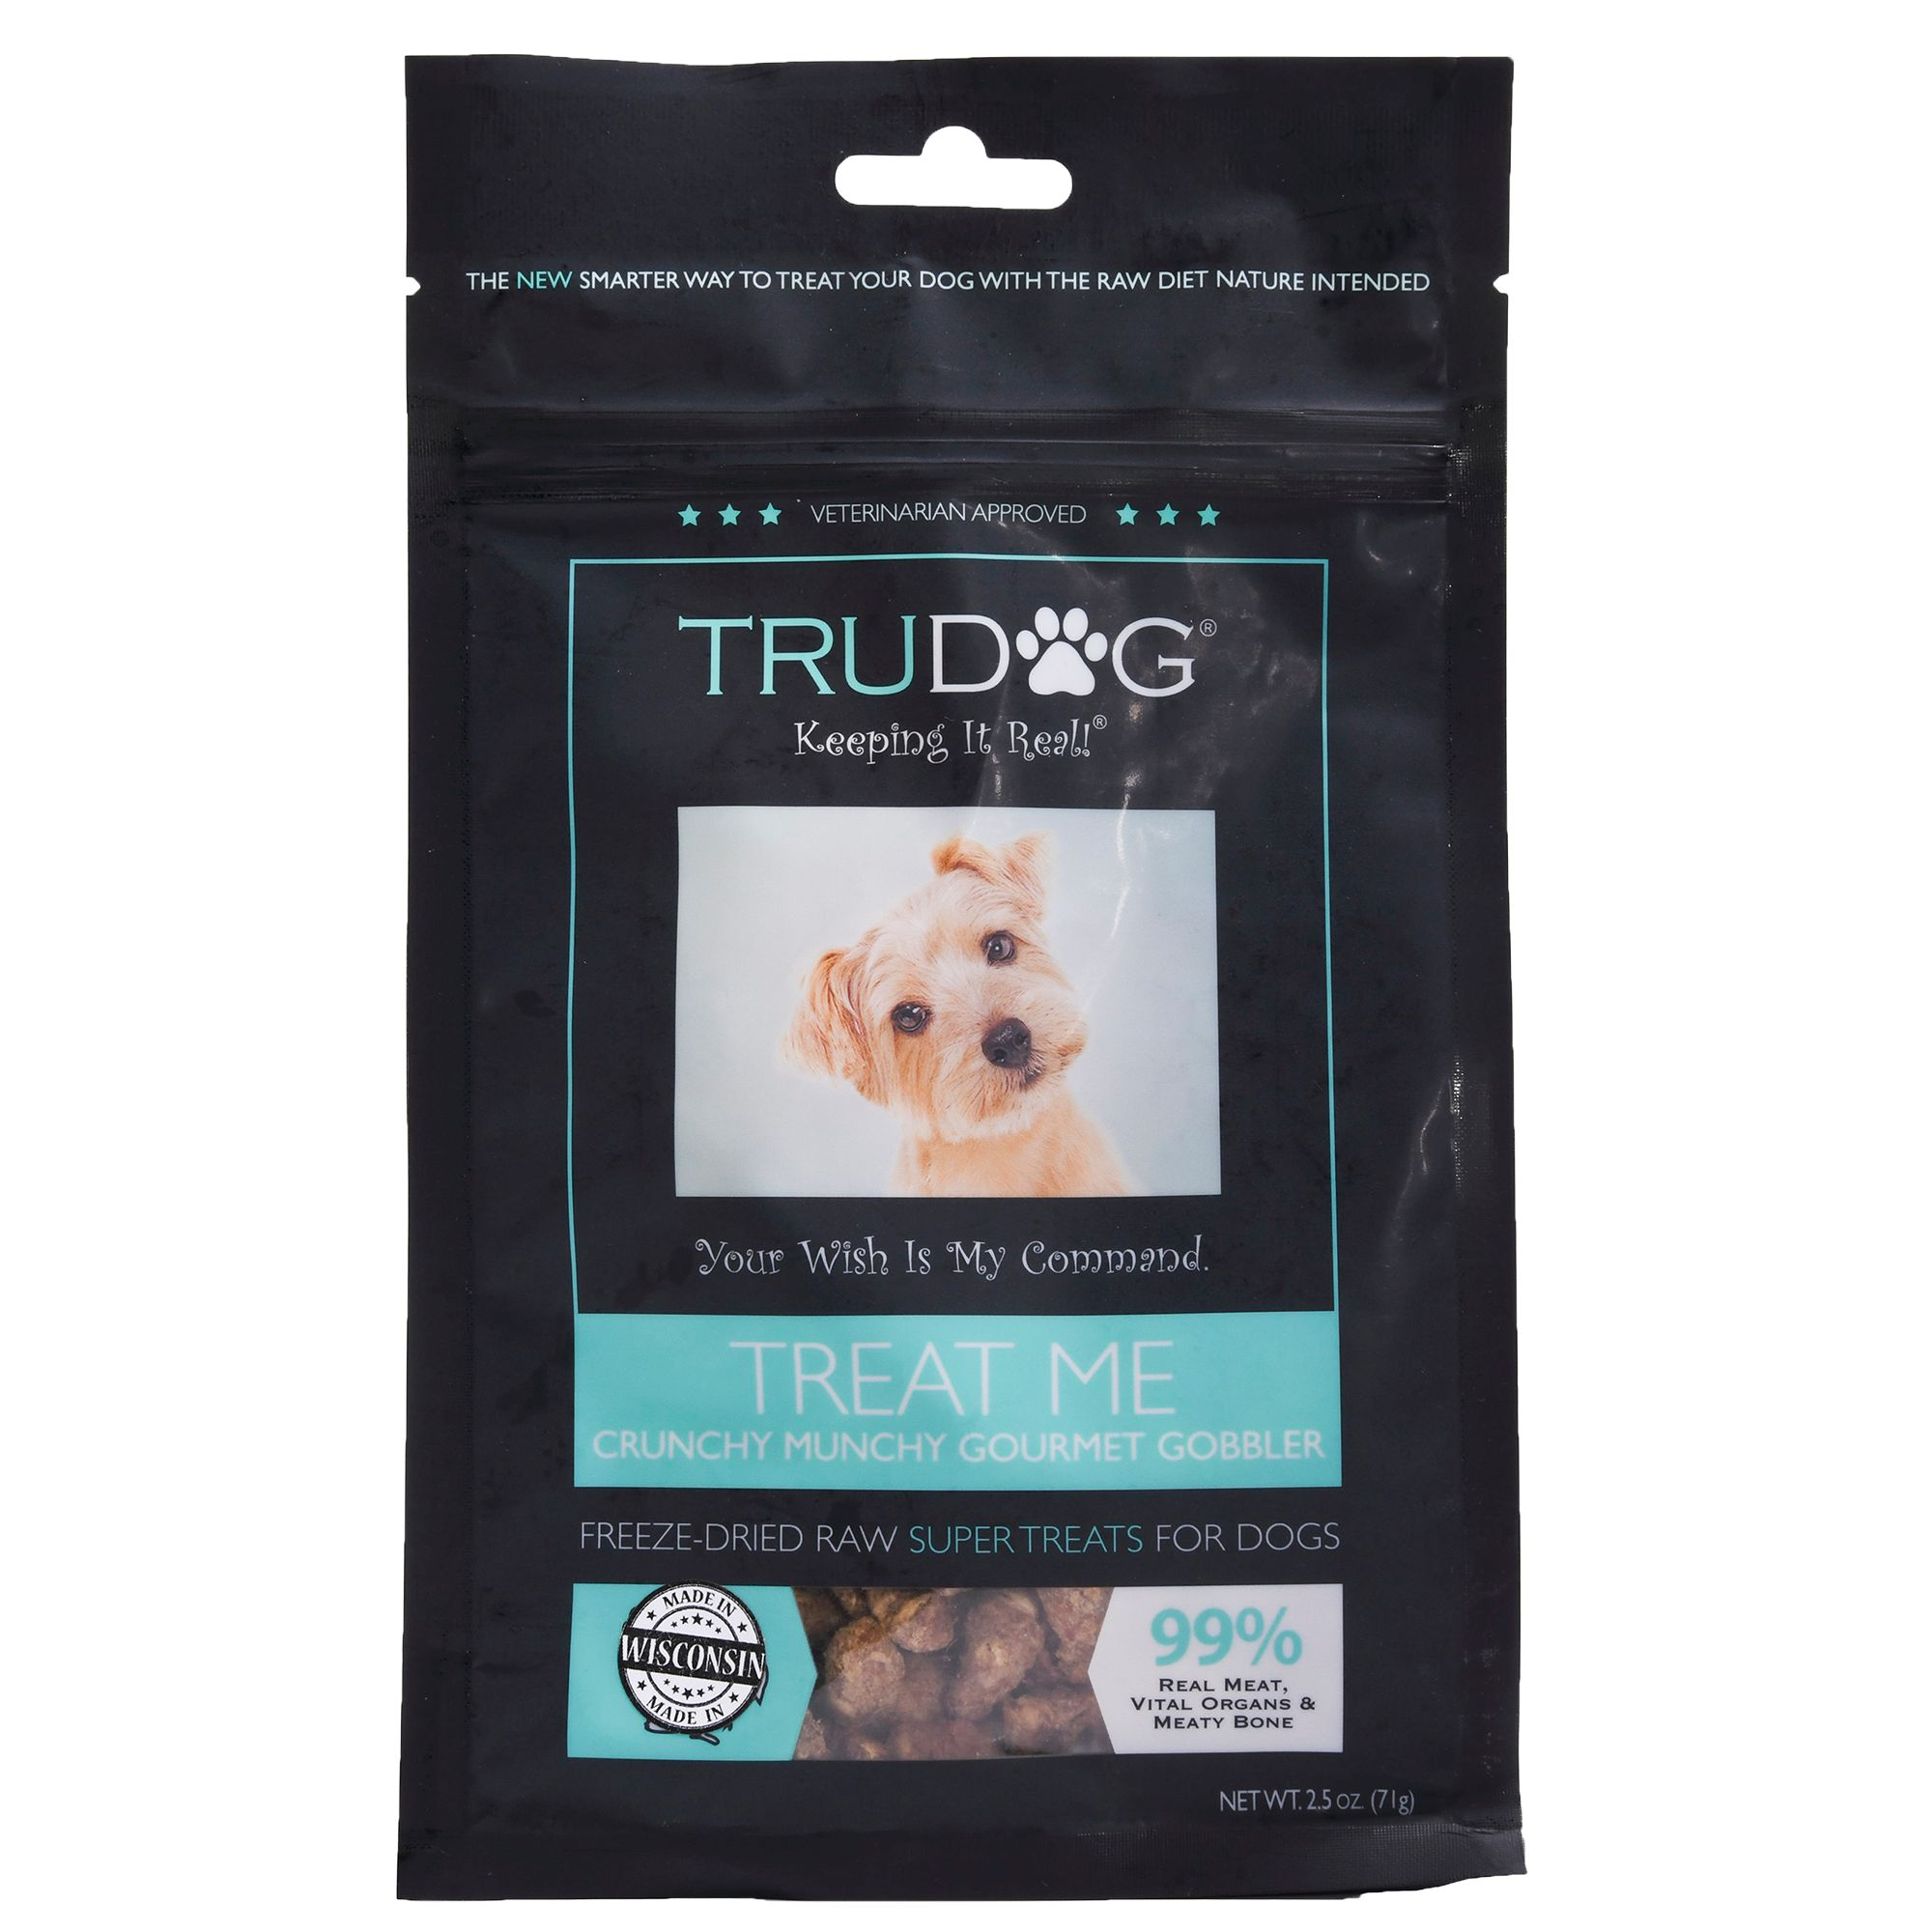 Trudog Treat Me Dog Treat Freeze Dried Raw Natural Gobbler Crunch Delight Size 2.5 Oz